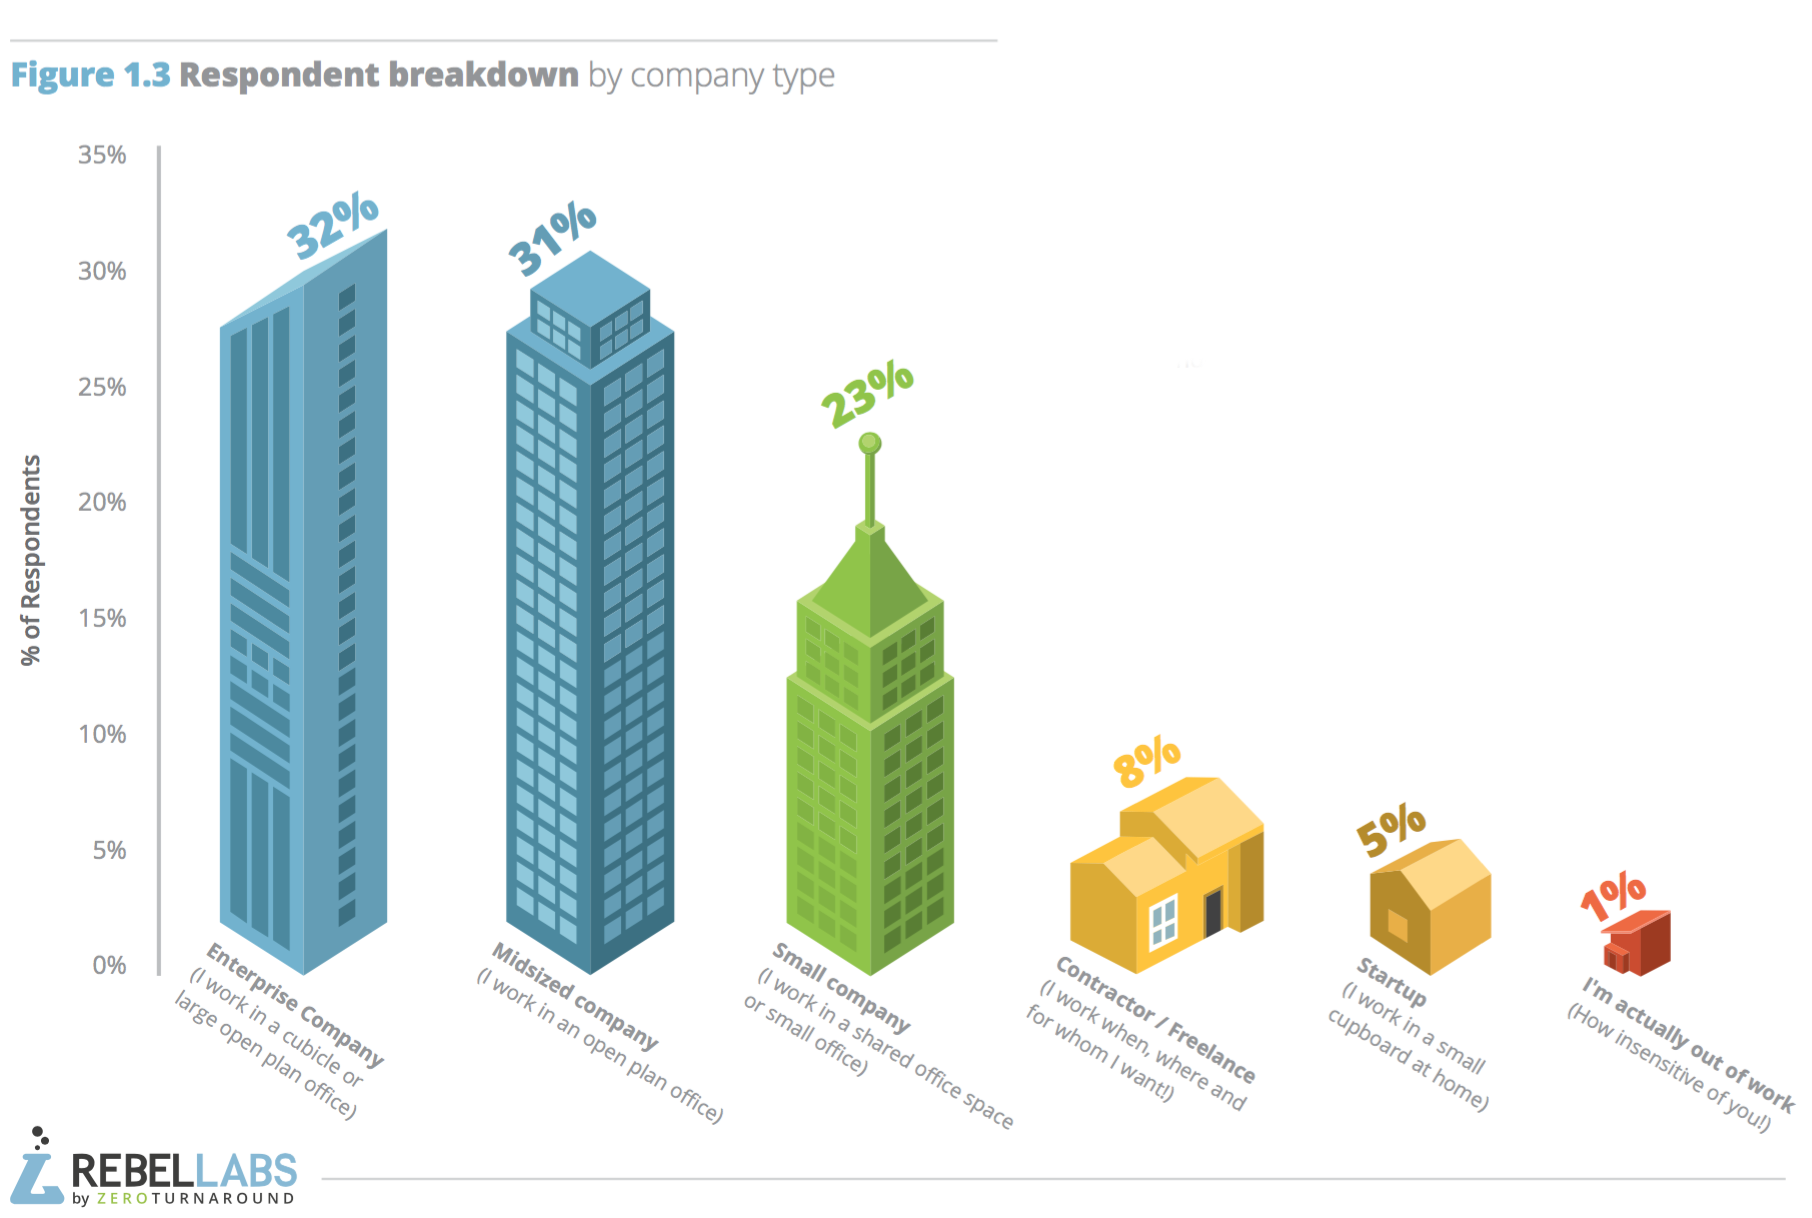 graph showing respondent percentage by company type